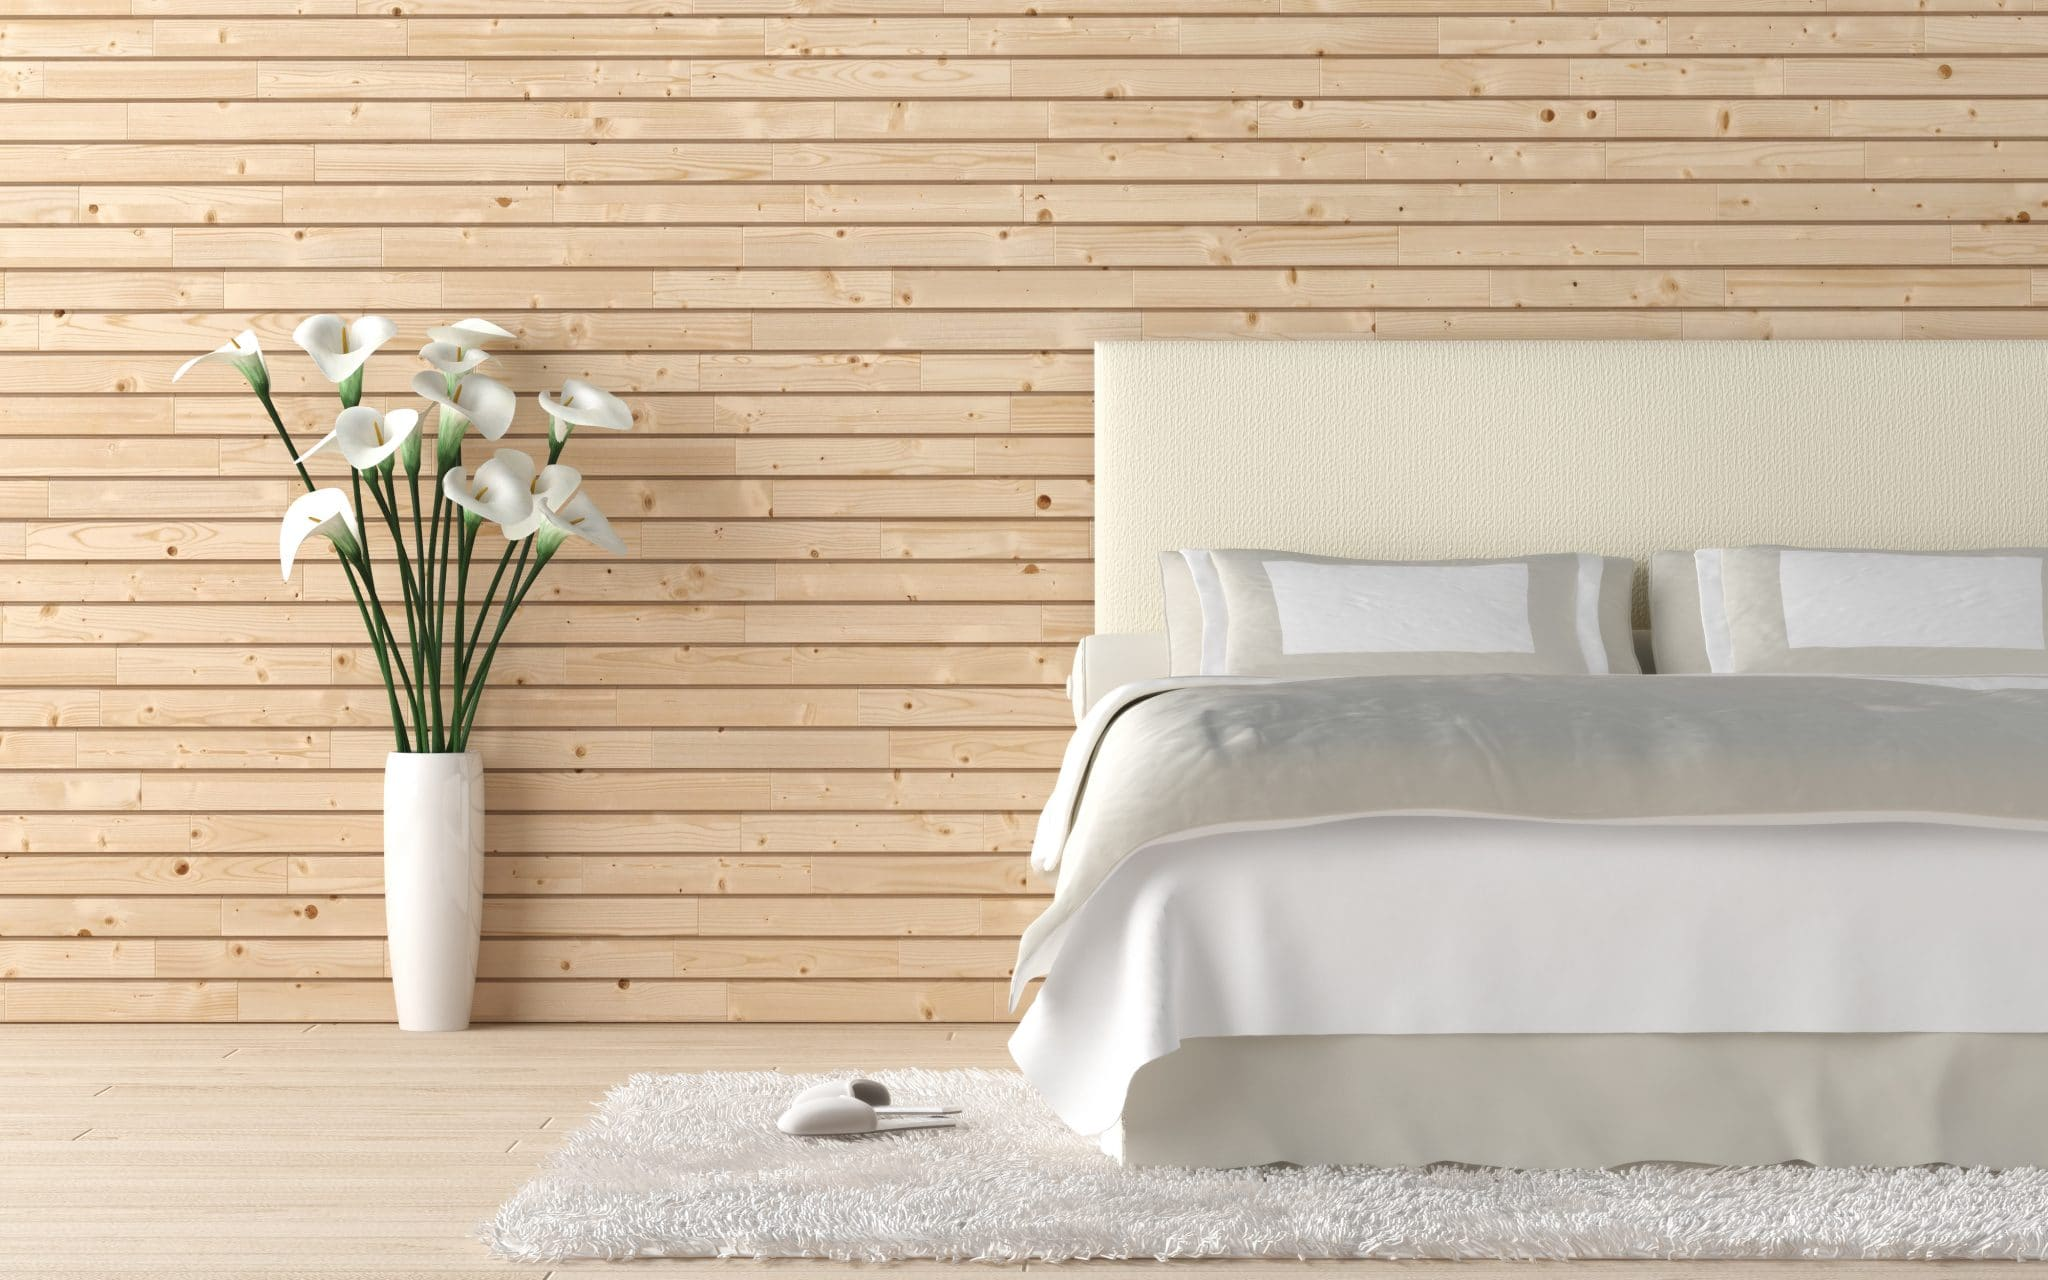 Declutter Your Bedroom And Sleep Better Tonight With These Genius Products